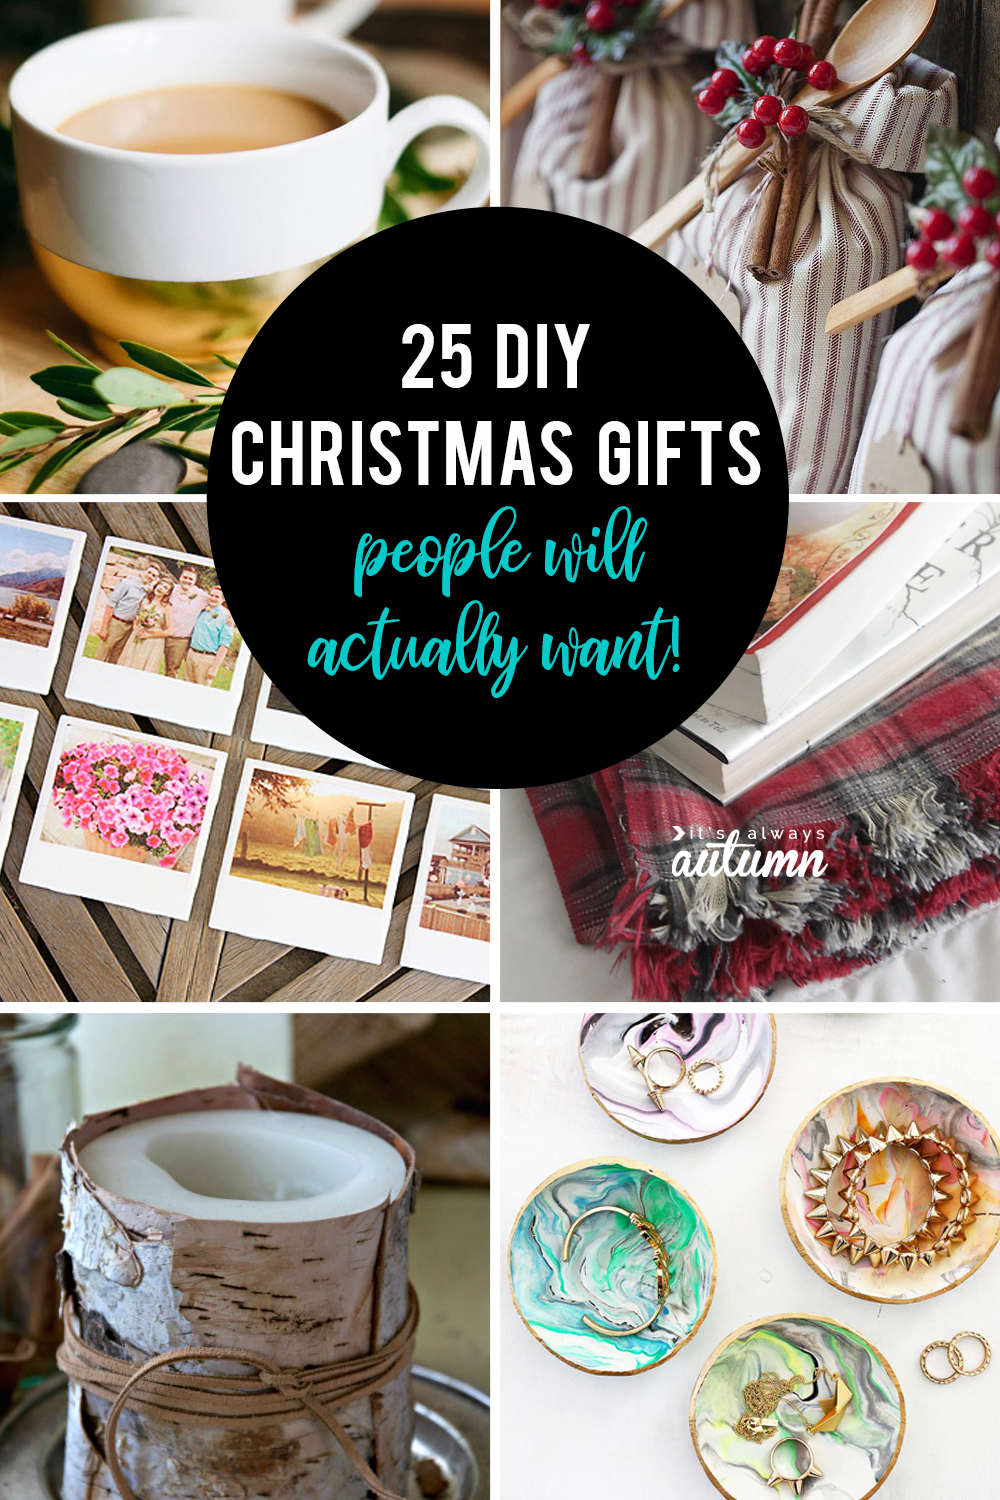 25 beautiful DIY Christmas gifts that people actually want! These are the best homemade Christmas gift ideas.